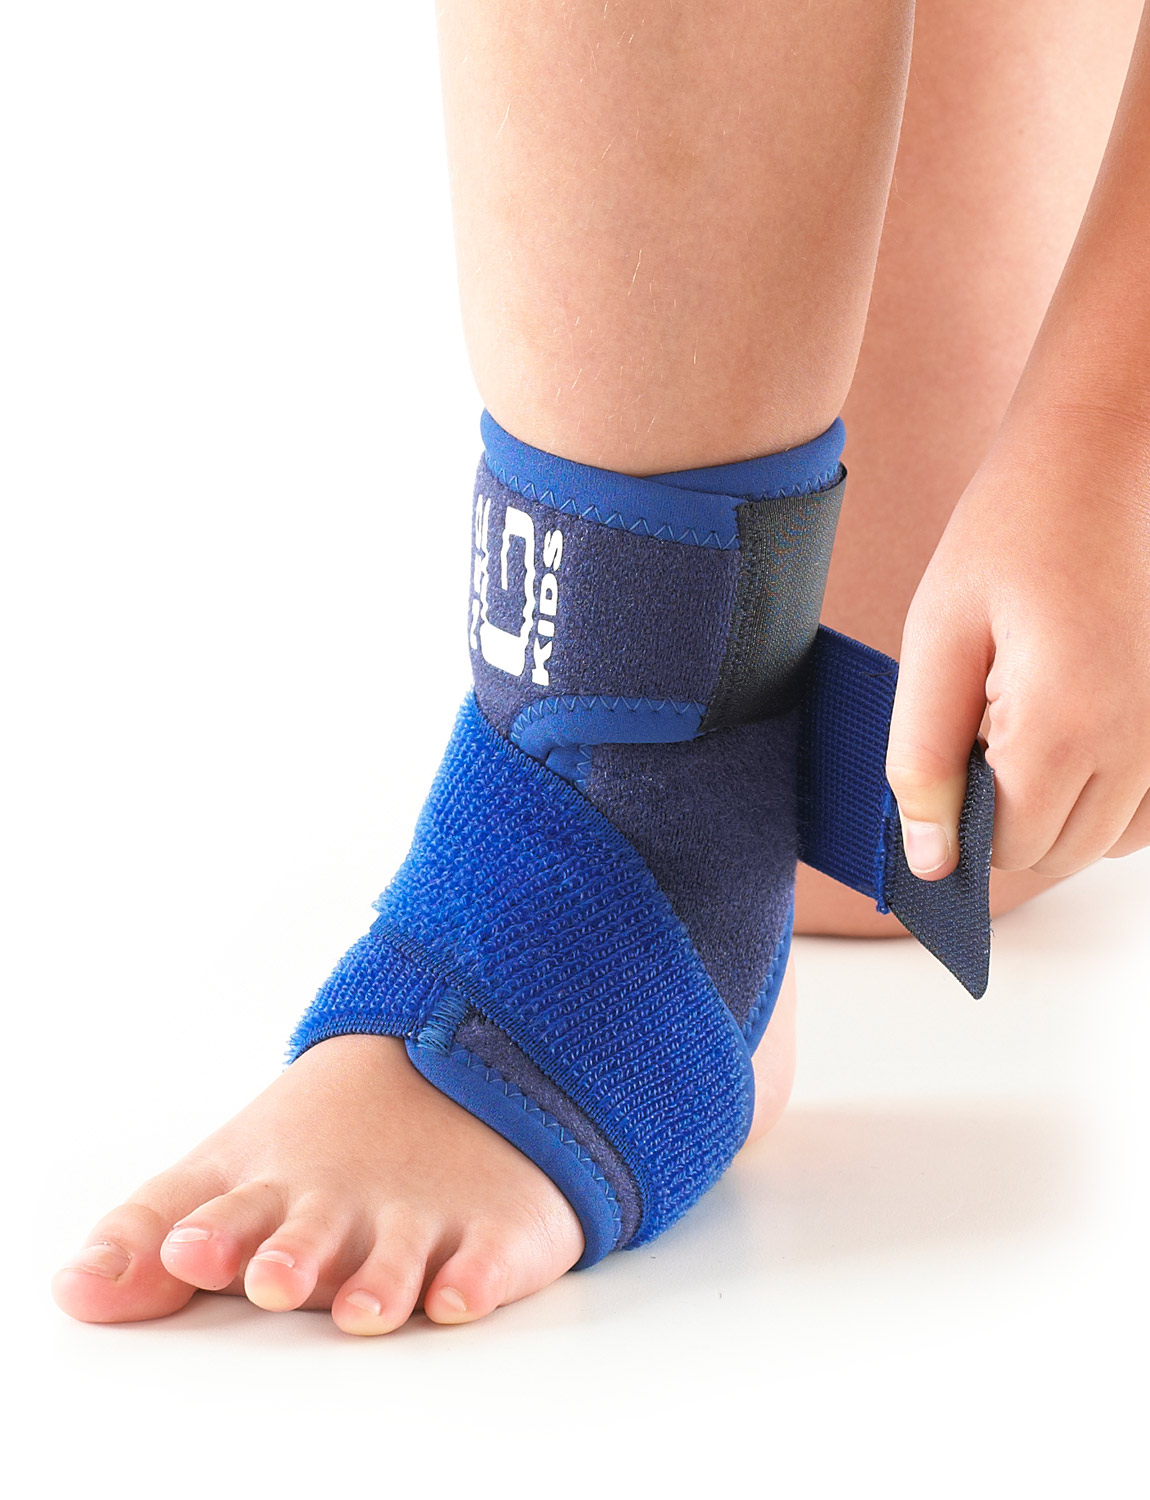 887K - KIDS ANKLE SUPPORT WITH FIGURE OF 8 STRAP  Specifically designed for the younger wearer and helps provide dynamic support around the ankle complex. The adjustable figure of 8 strap helps provide added support and compression during sporting and recreational activities. The support helps to reduce excessive planterflexion as well as inversion and eversion of the ankle all of which are associated with ligamentous injuries and instability of the ankle. The durable, heat therapeutic neoprene helps warm muscles and joints, helping with arthritic ankles and chronic aches and stiffness